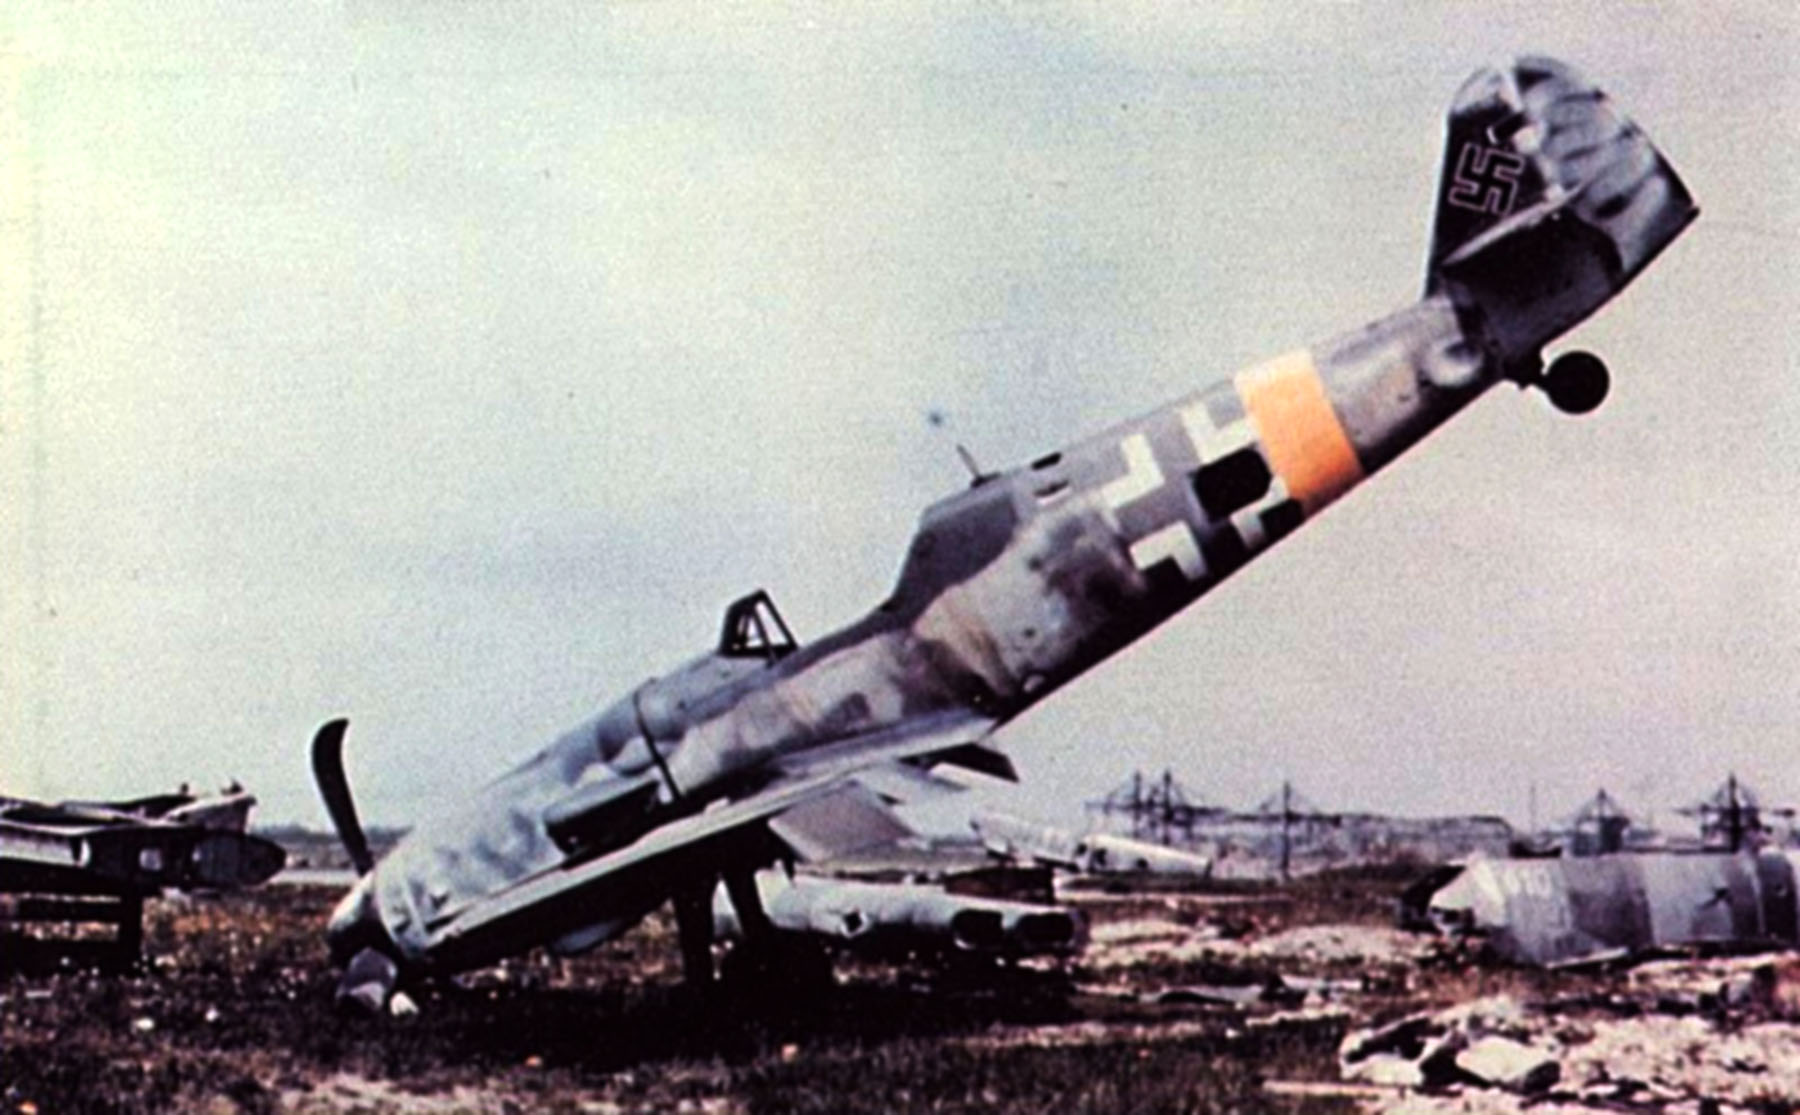 Messerschmitt Bf 109G14 Erla RVT WNr 165545 unknown unit lies abandoned Augsburg Bavaria Germany May 1945 02